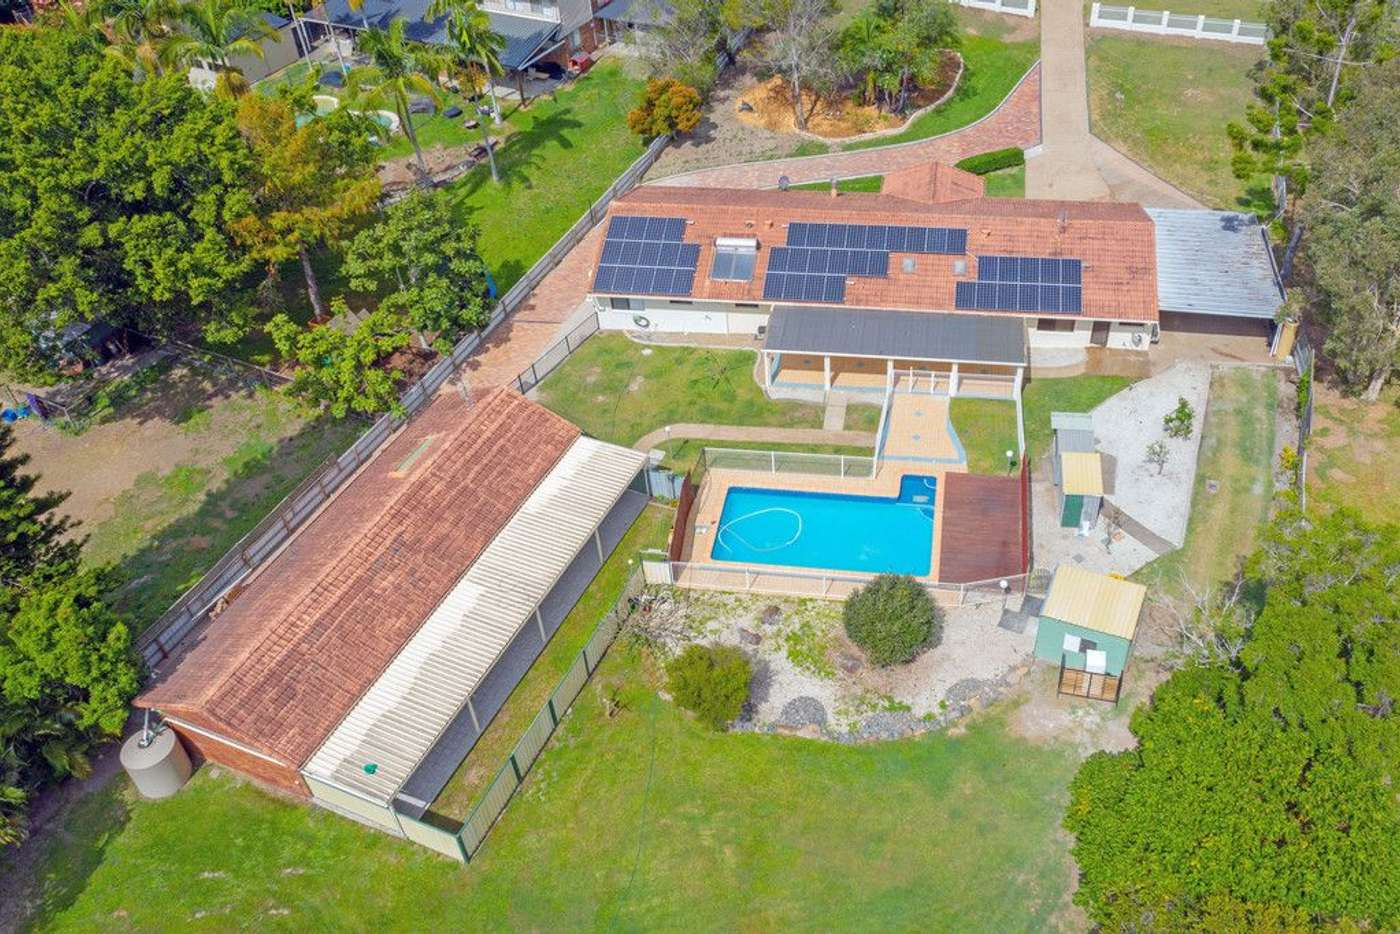 Fifth view of Homely house listing, 4 Tom Latimer Court, Worongary QLD 4213